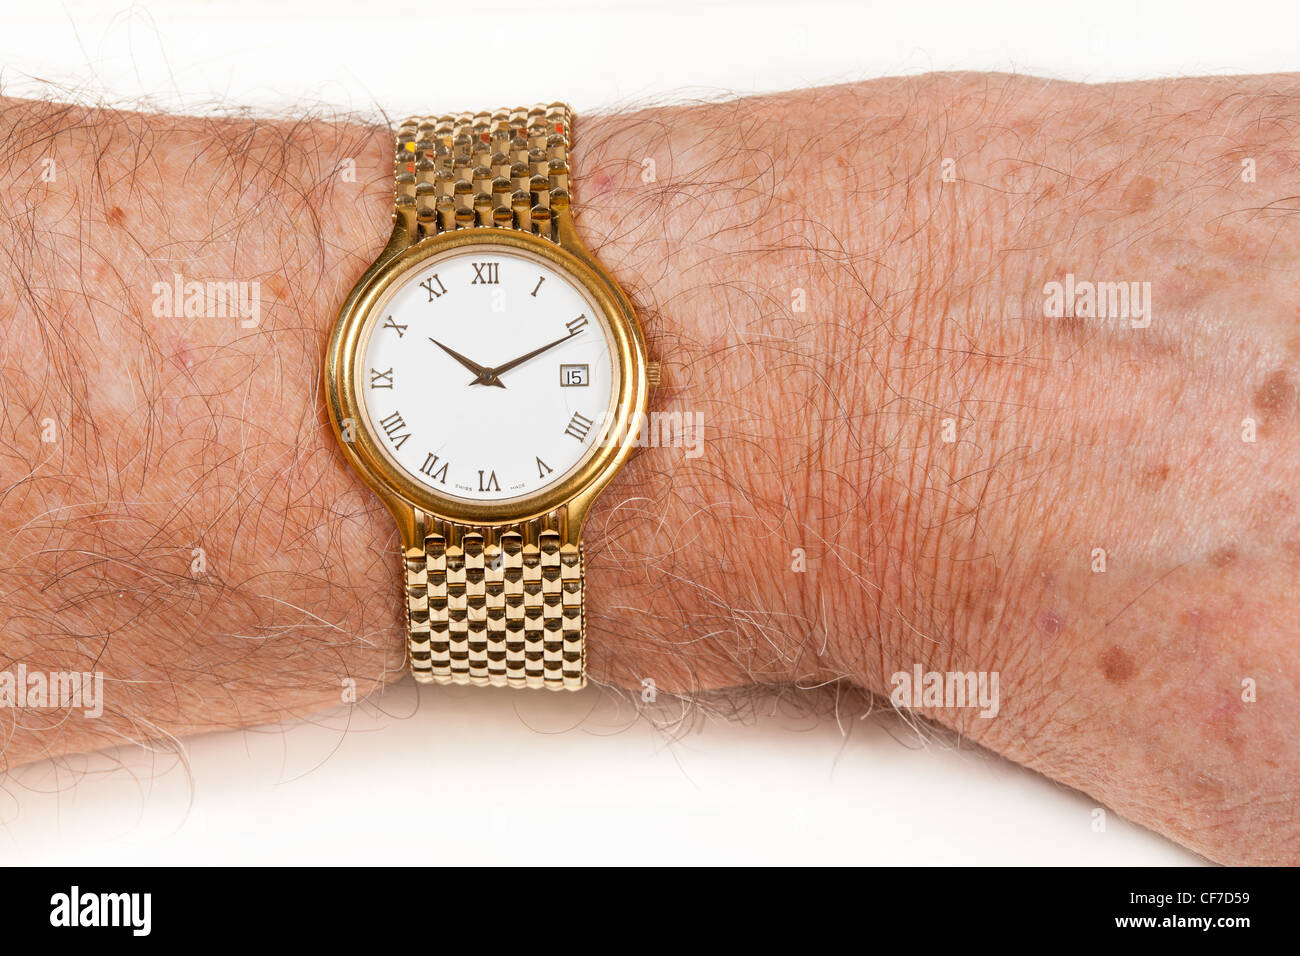 Gold watch and band in close up on wrist of hairy senior man - Stock Image